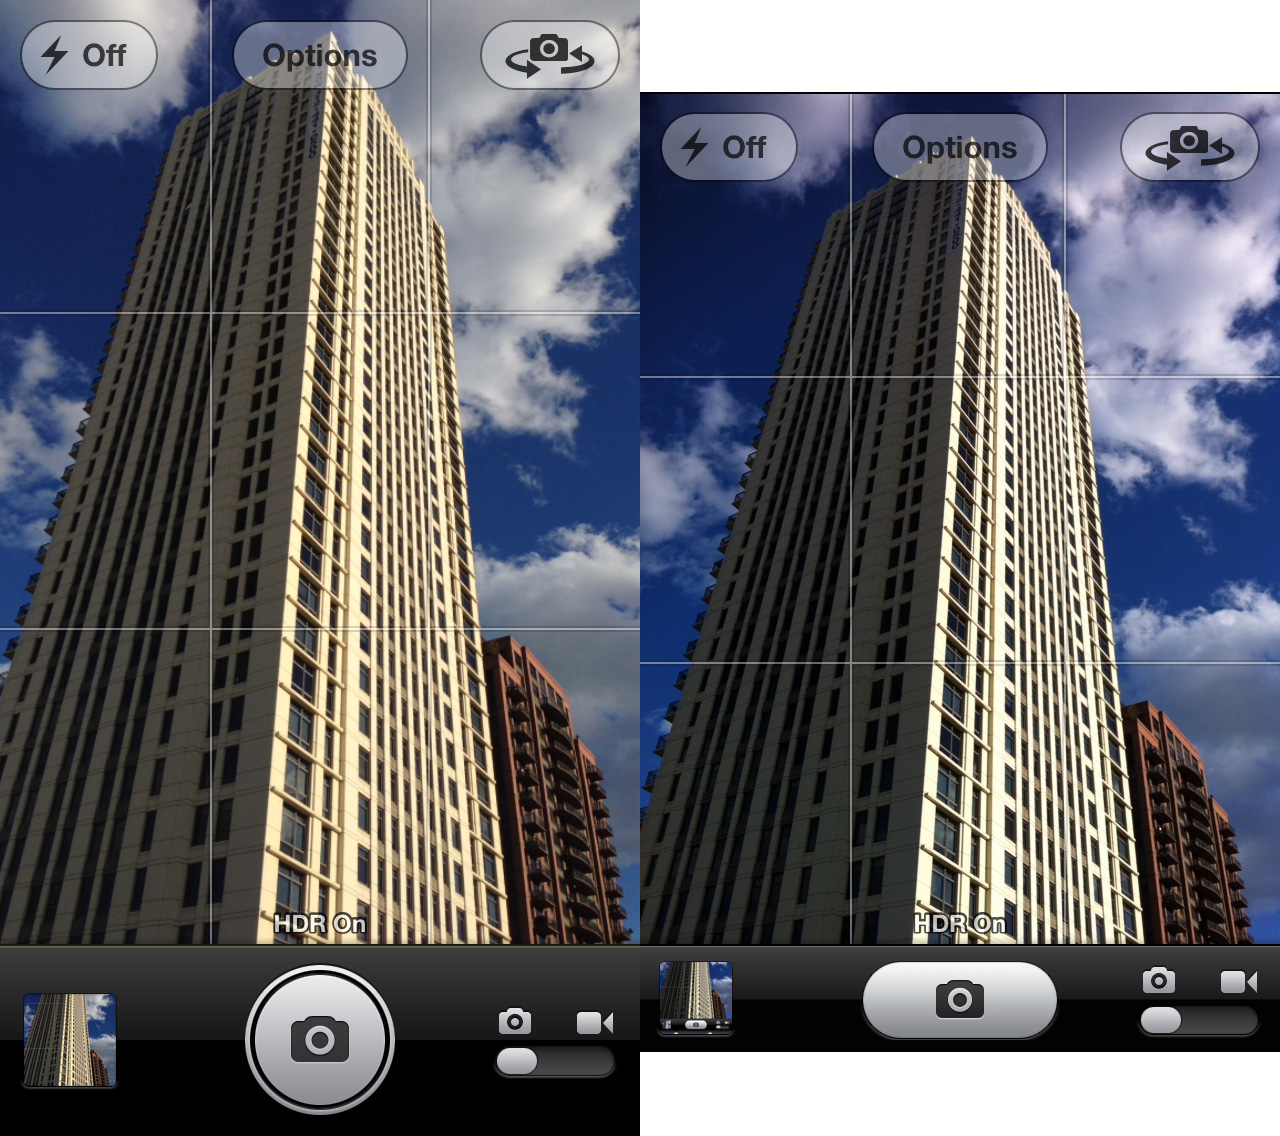 The iPhone 5 Camera interface (left) has a much larger shutter button compared to previous iPhones (right).